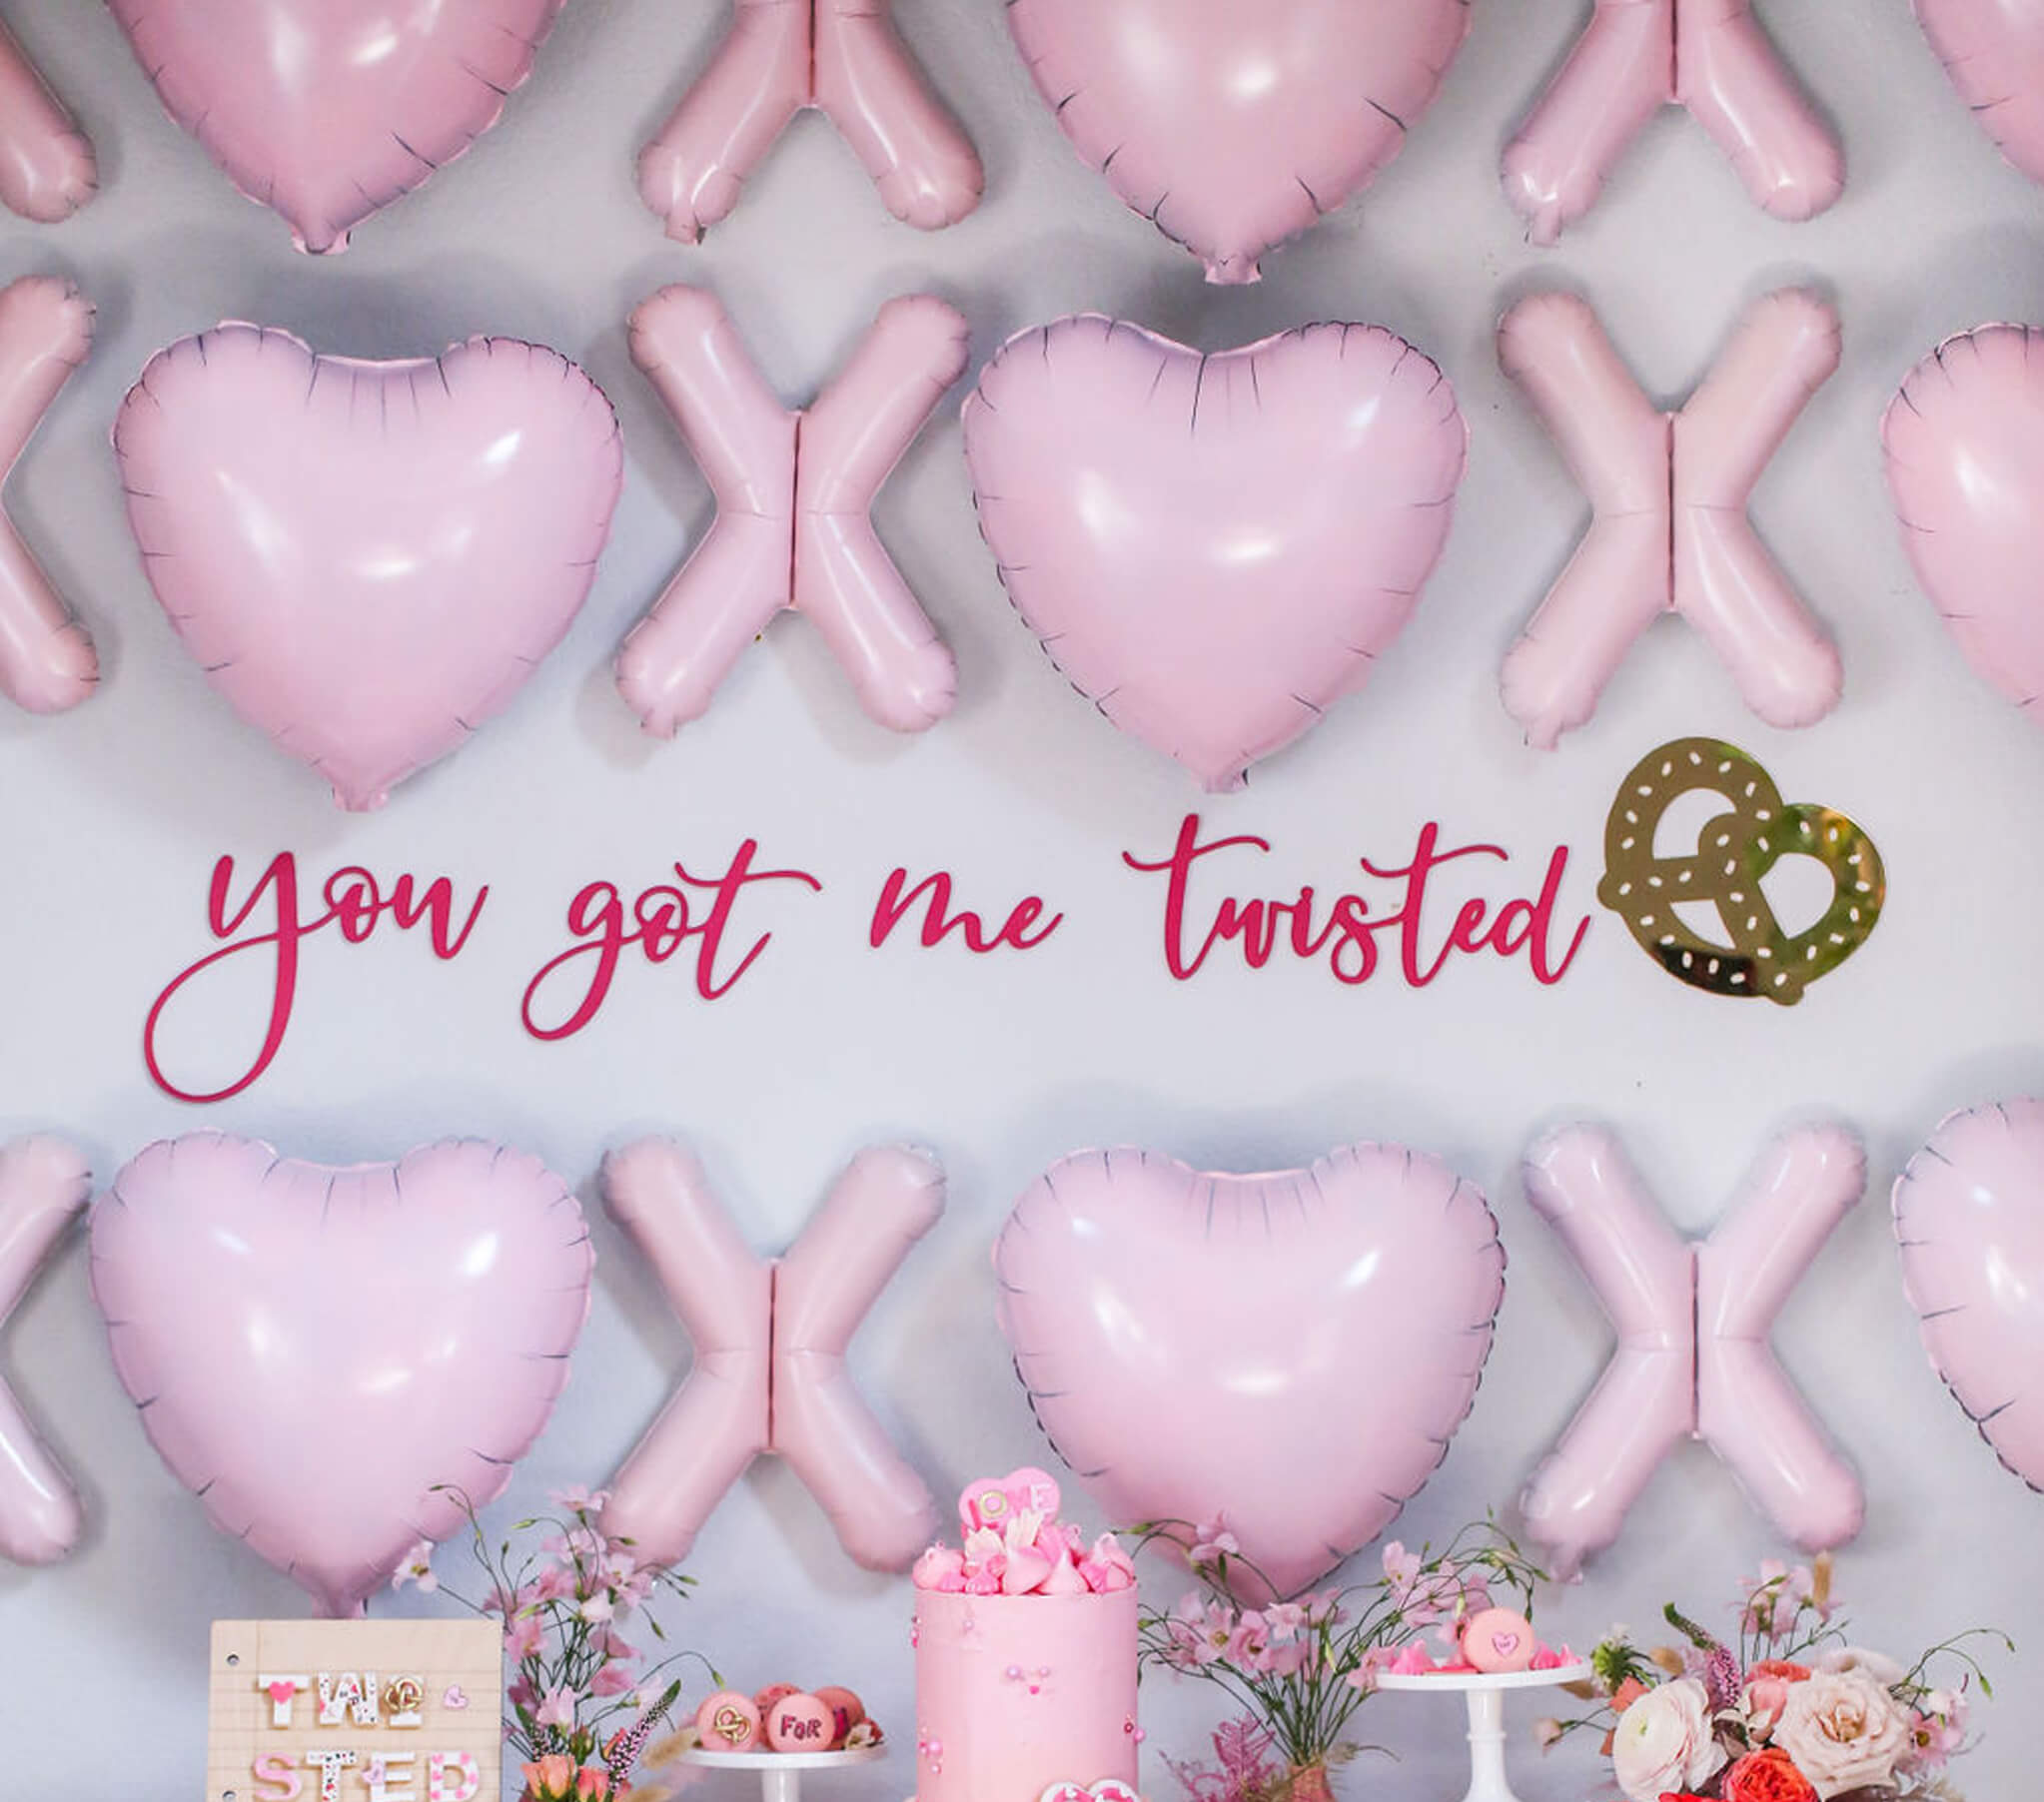 """DIY XOXO Balloon Backdrop from """"You Got Me Twisted"""" Valentine's Day Party Styled by Golden Arrow Events & Design   Black Twine"""